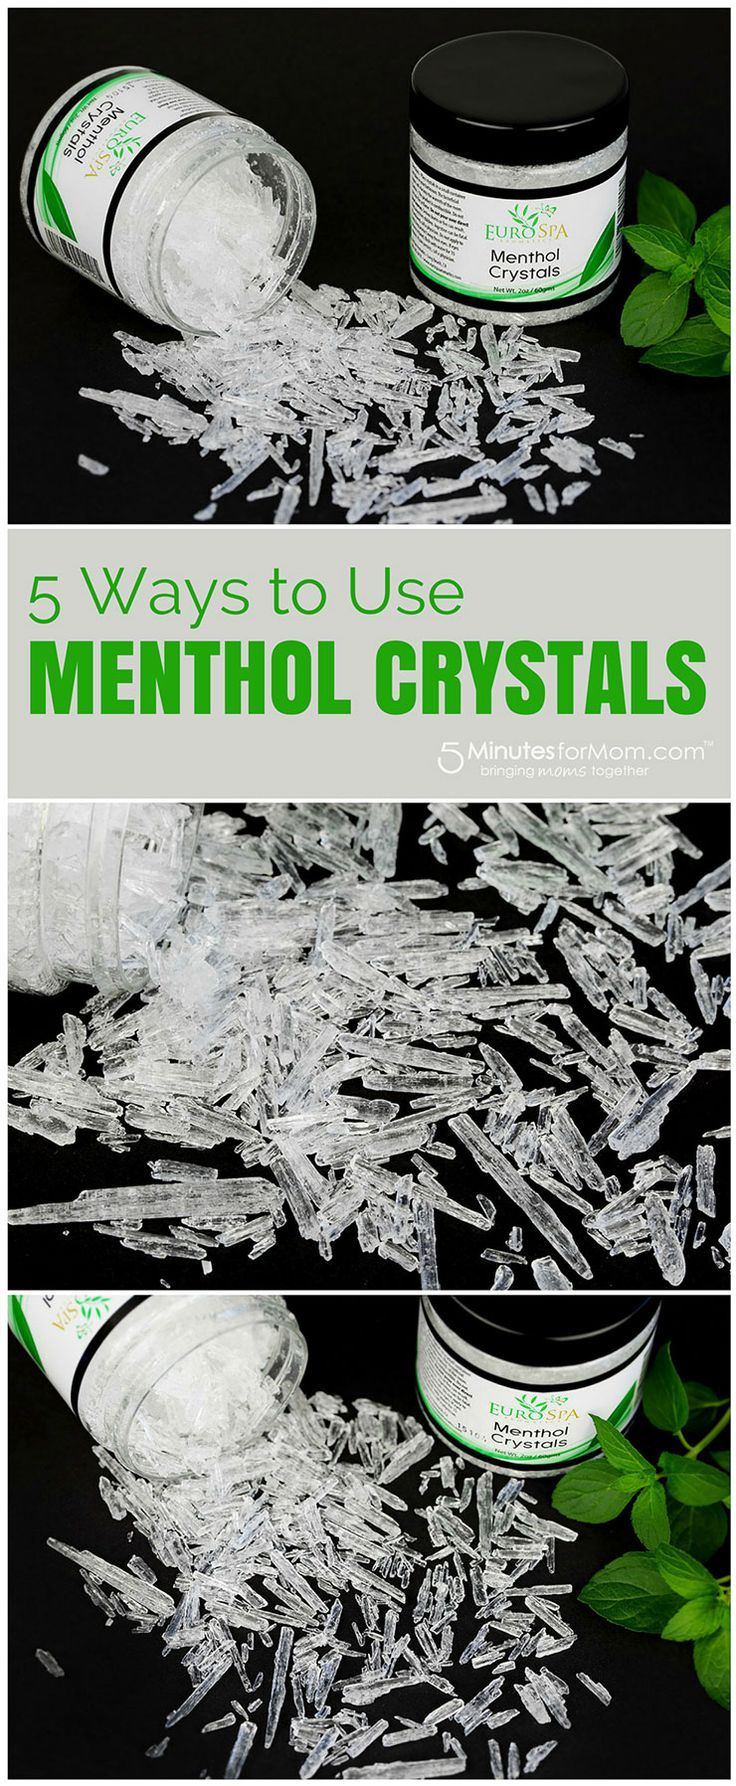 How to Use Menthol Crystals and make a Homemade Menthol Rub -  This easy DIY is one of my favorite ways to use menthol crystals is to add some crystals to melted coconut oil to make an invigorating oil that is perfect for massaging as a menthol rub, for moisturizing either in or out of the bath and shower, and for shaving.